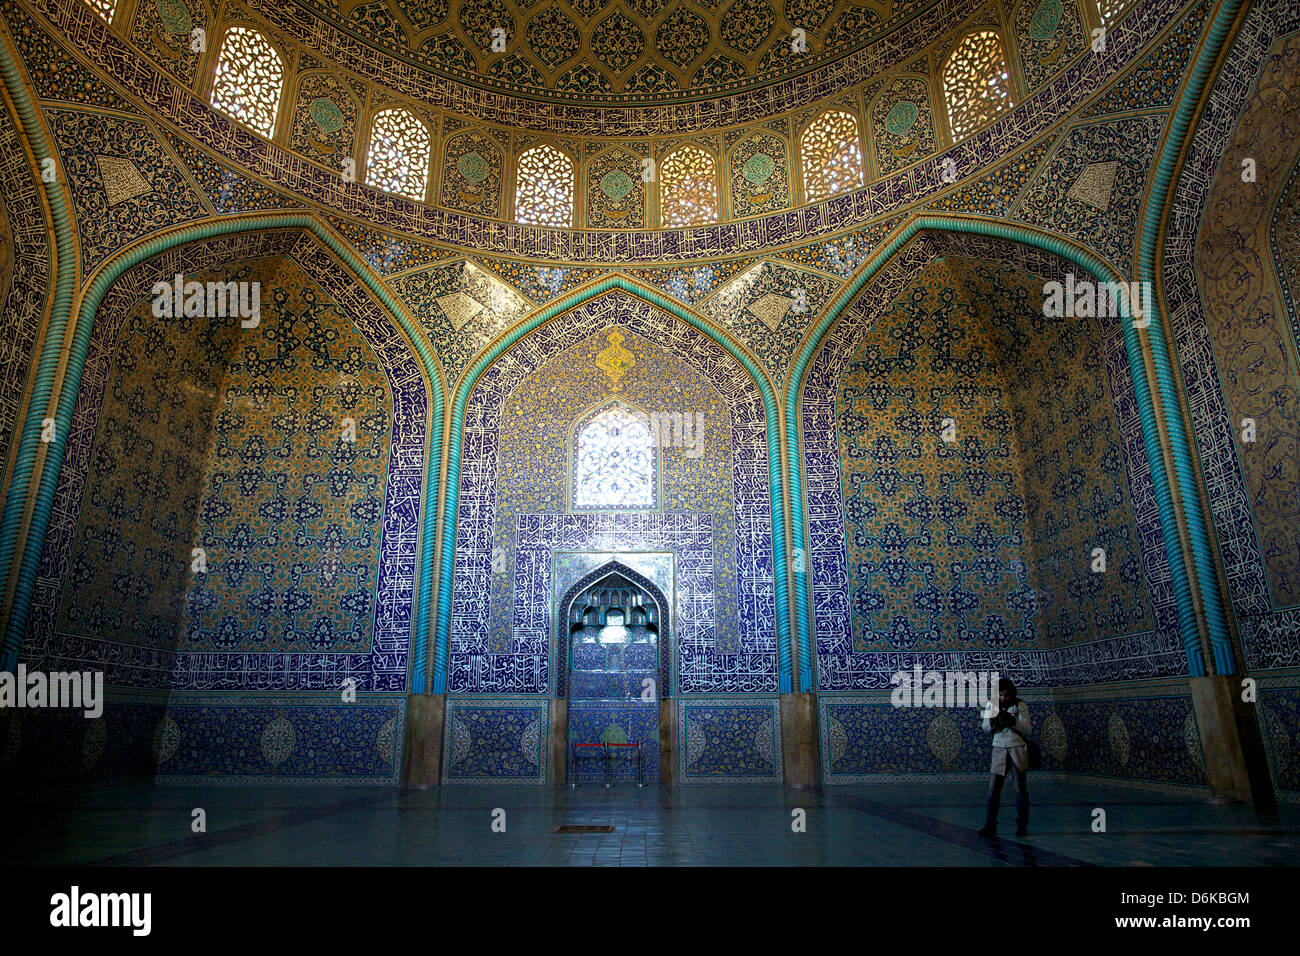 Inside the Sheikh Lotfollah Mosque, Isfahan, Iran, Middle East - Stock Image